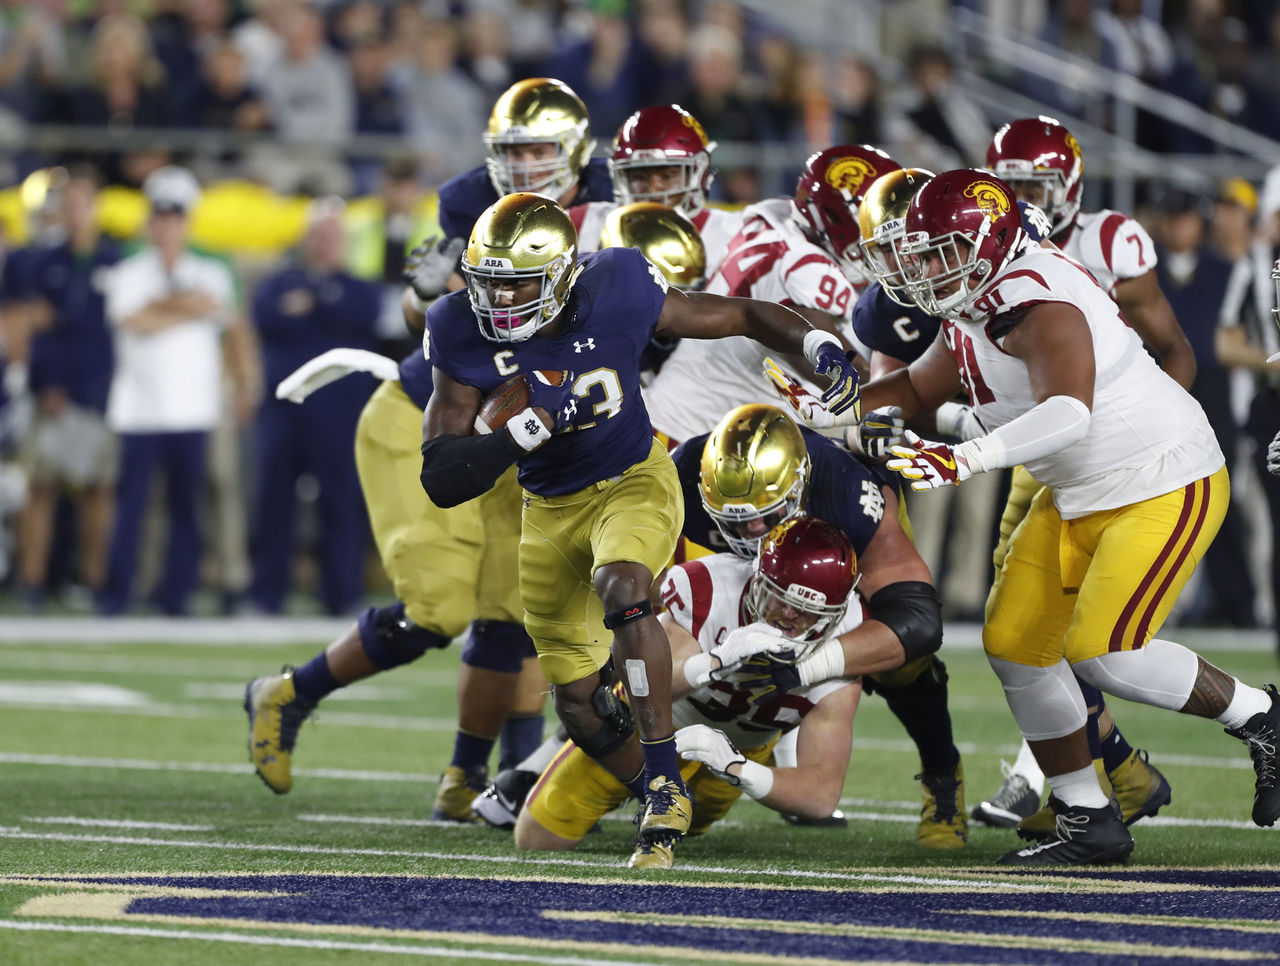 Cropped 2017 10 22t011453z 441275198 nocid rtrmadp 3 ncaa football southern california at notre dame